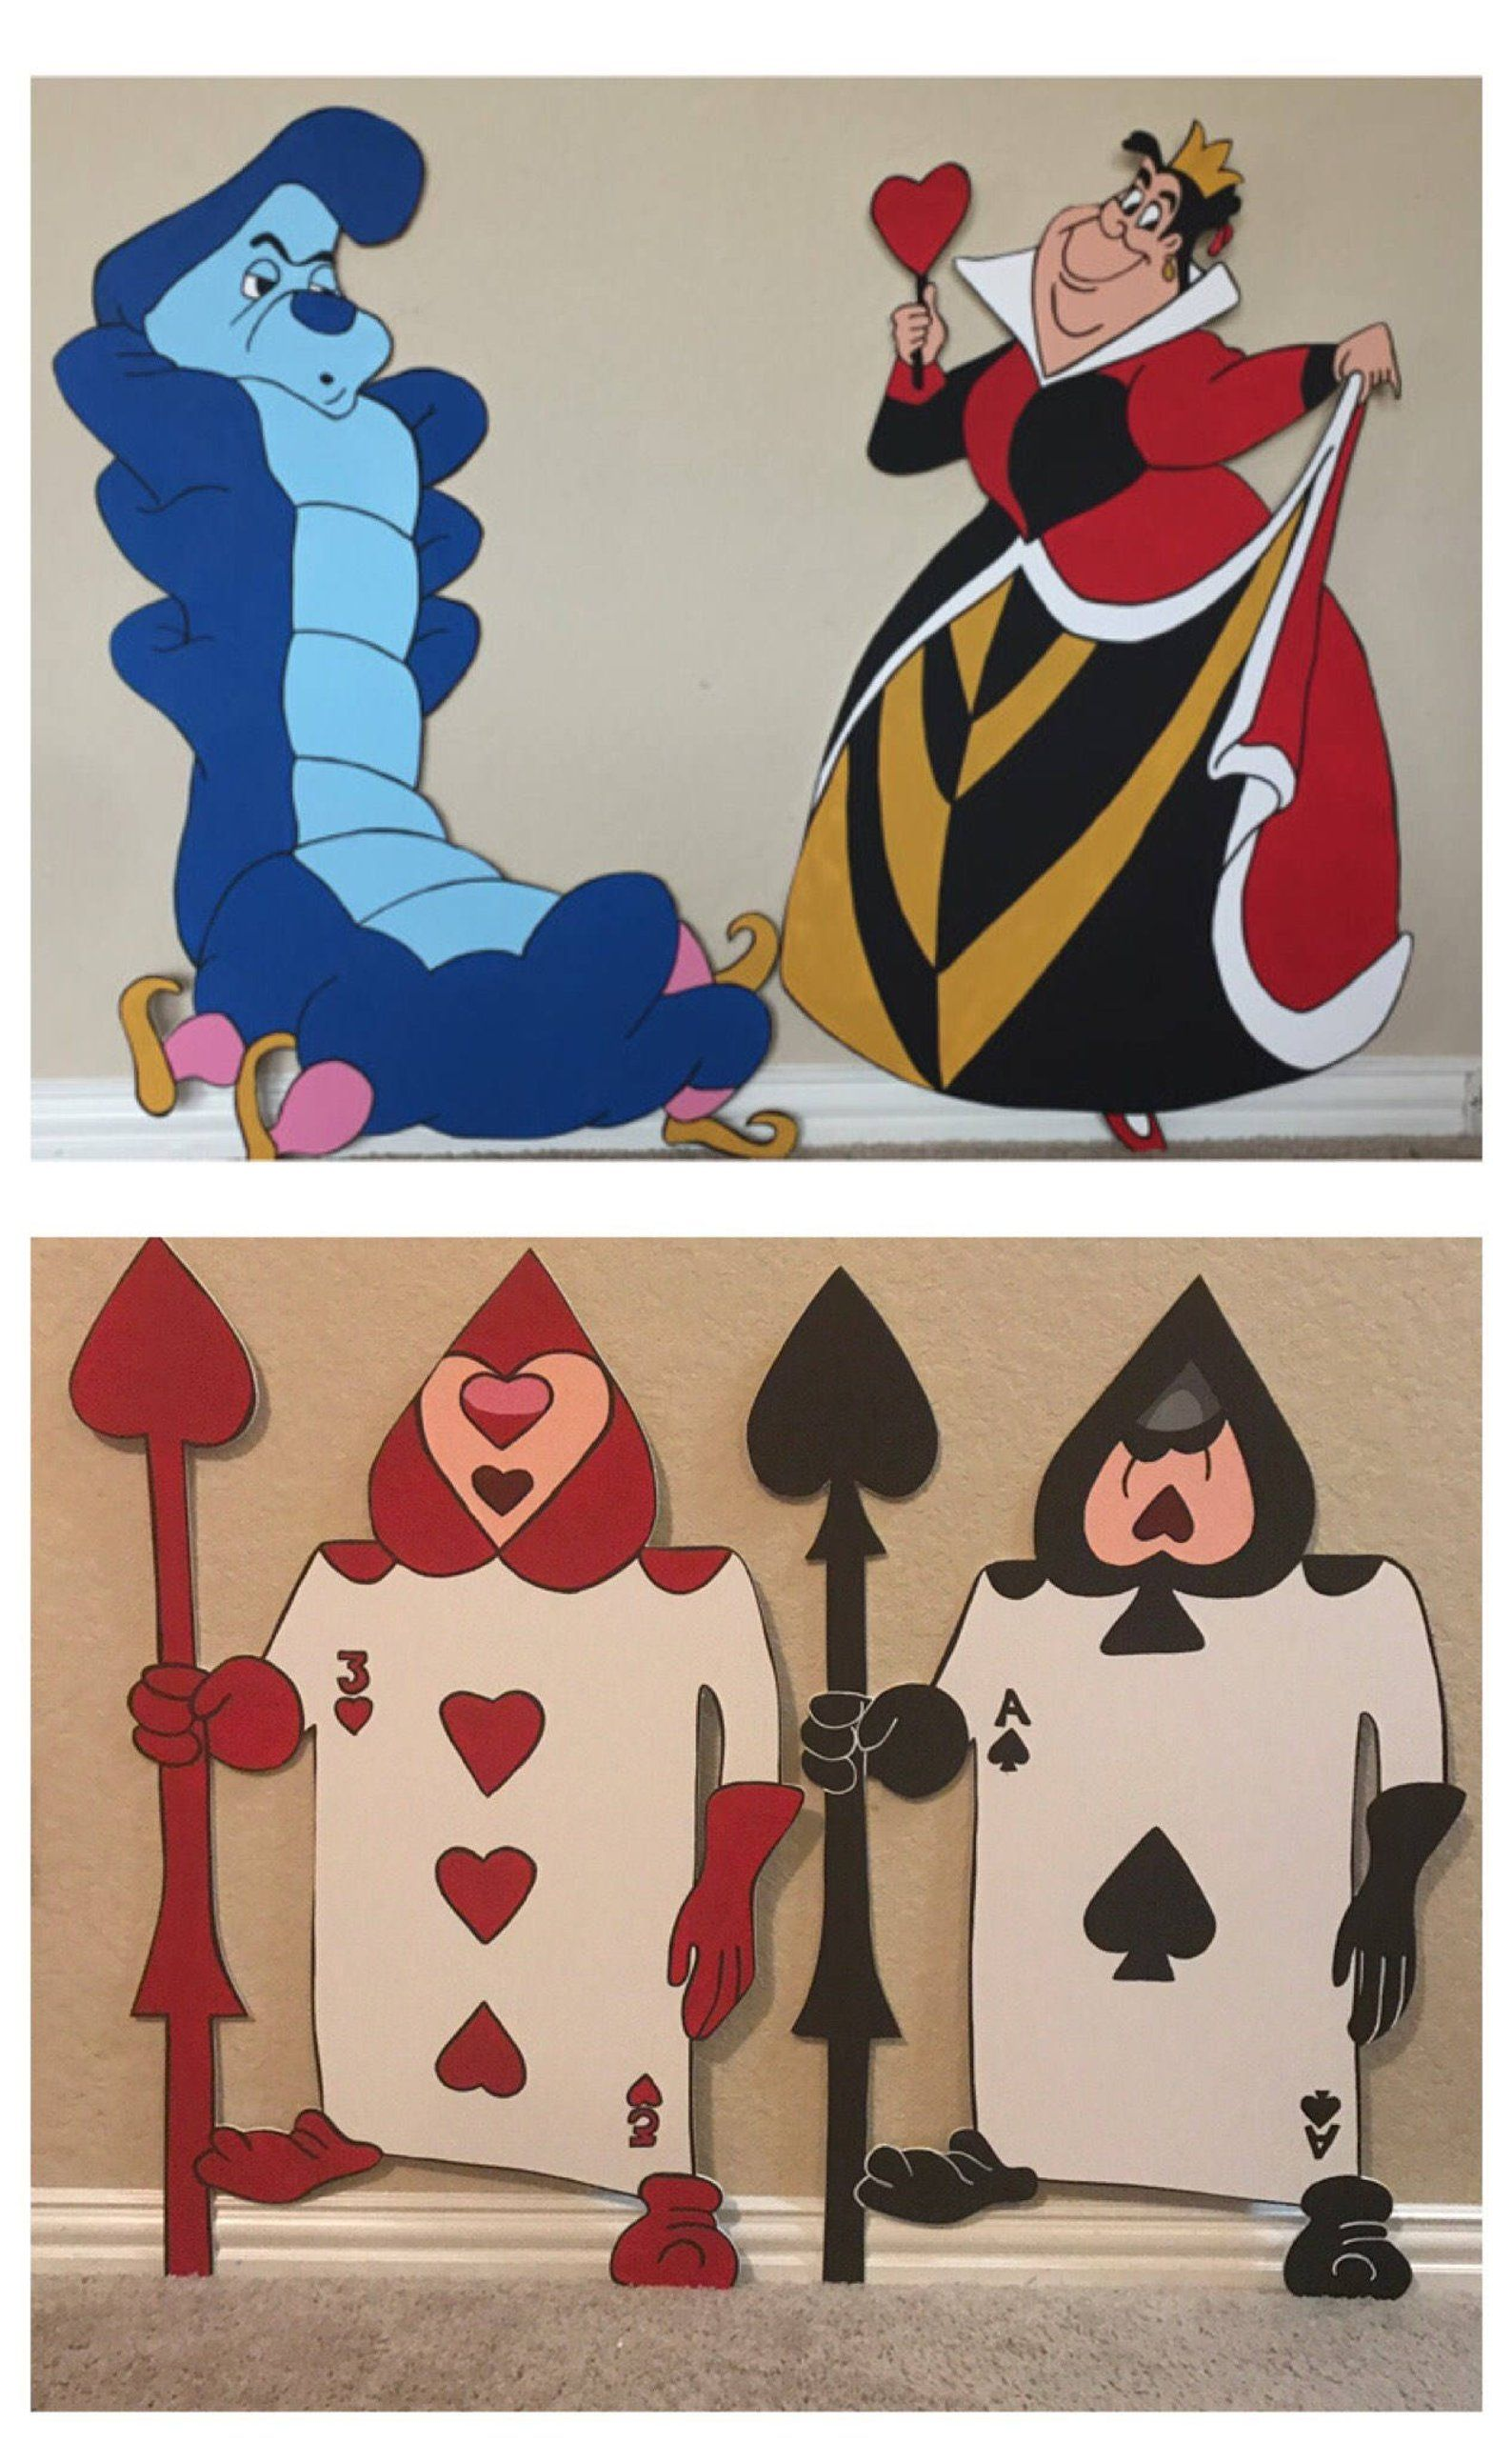 1 Alice Or Friends Cutout Prop With Images Alice In Wonderland